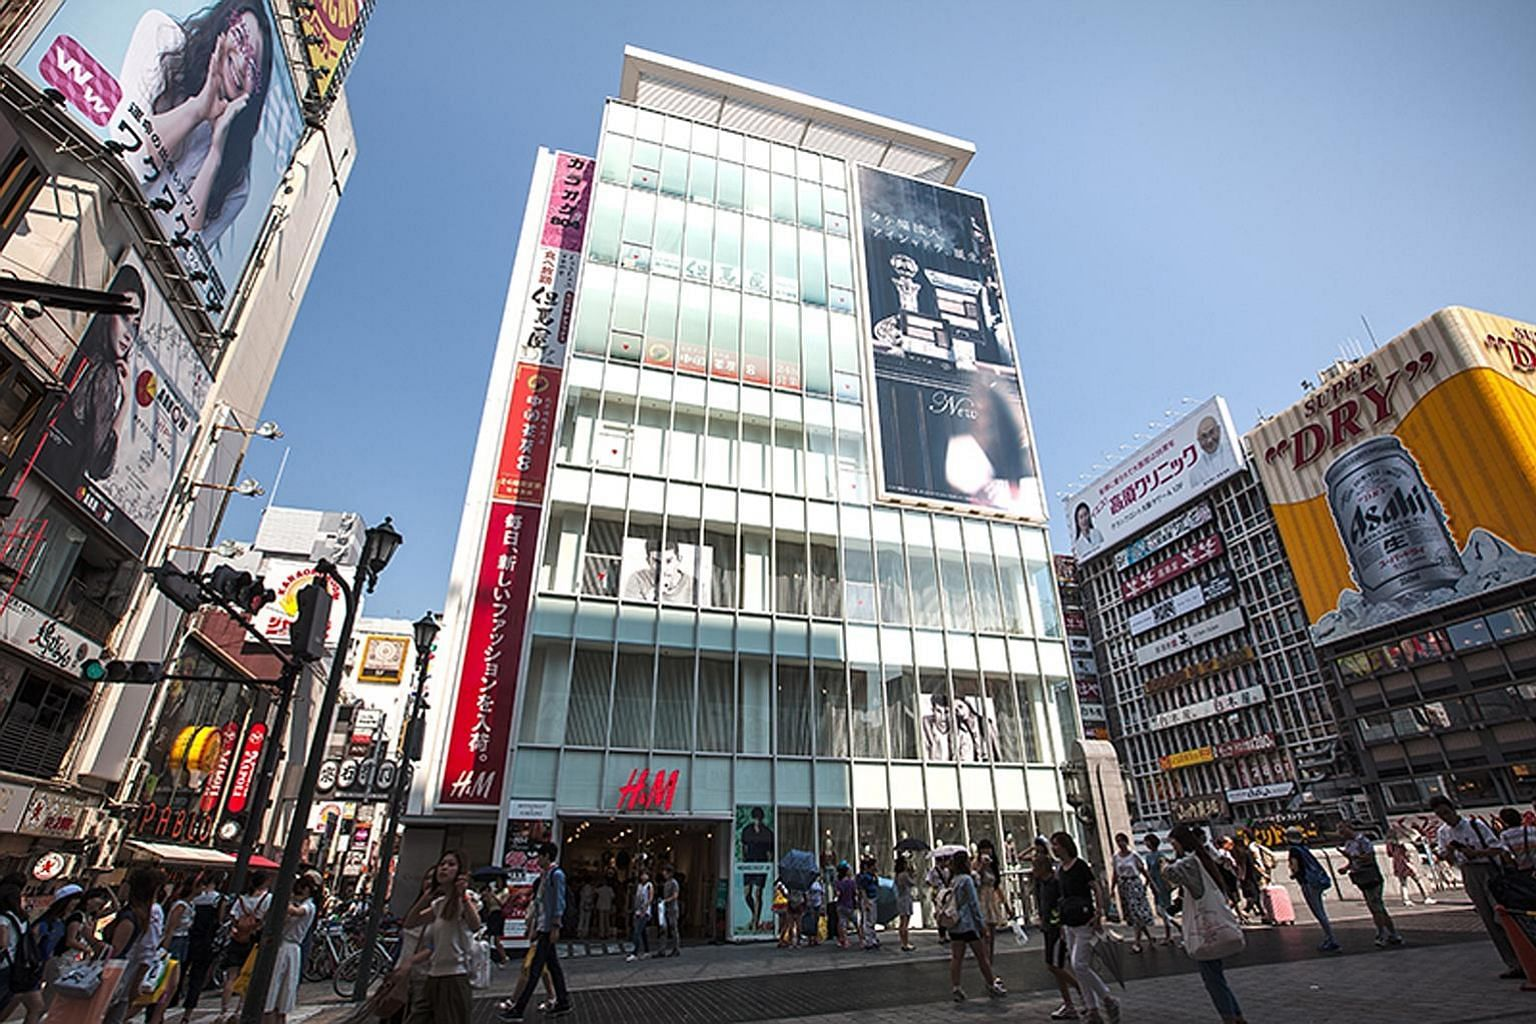 Croesus Shinsaibashi in Osaka, one of the Japan-based retail business trust's 11 malls in Japan - which add up to a $1.4 billion portfolio. The trust had four malls when it was listed in 2013.